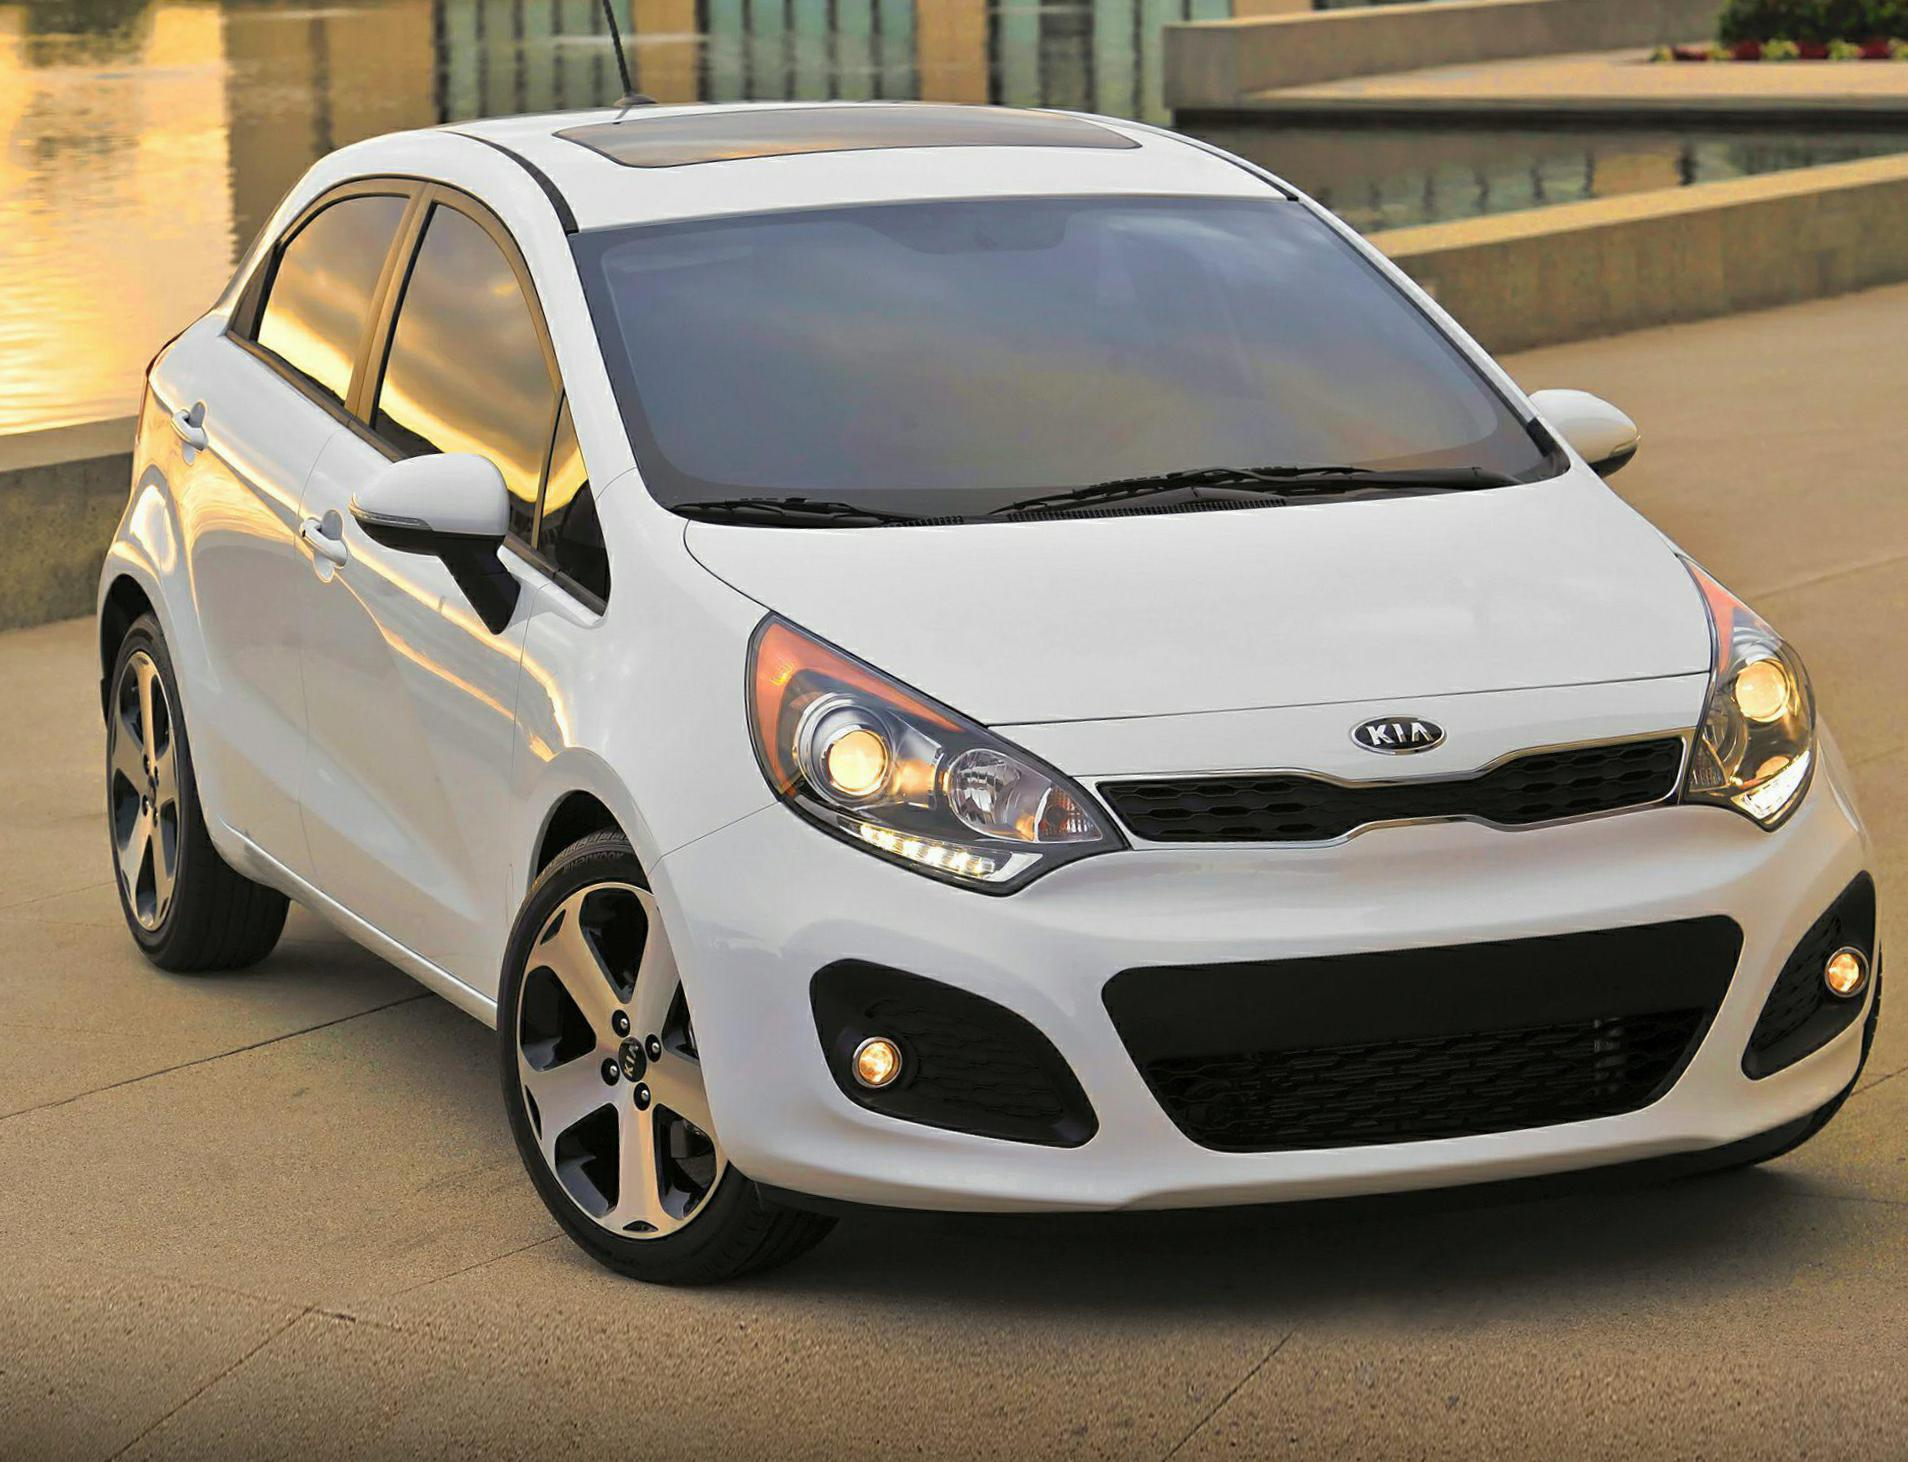 Rio Hatchback KIA approved 2003